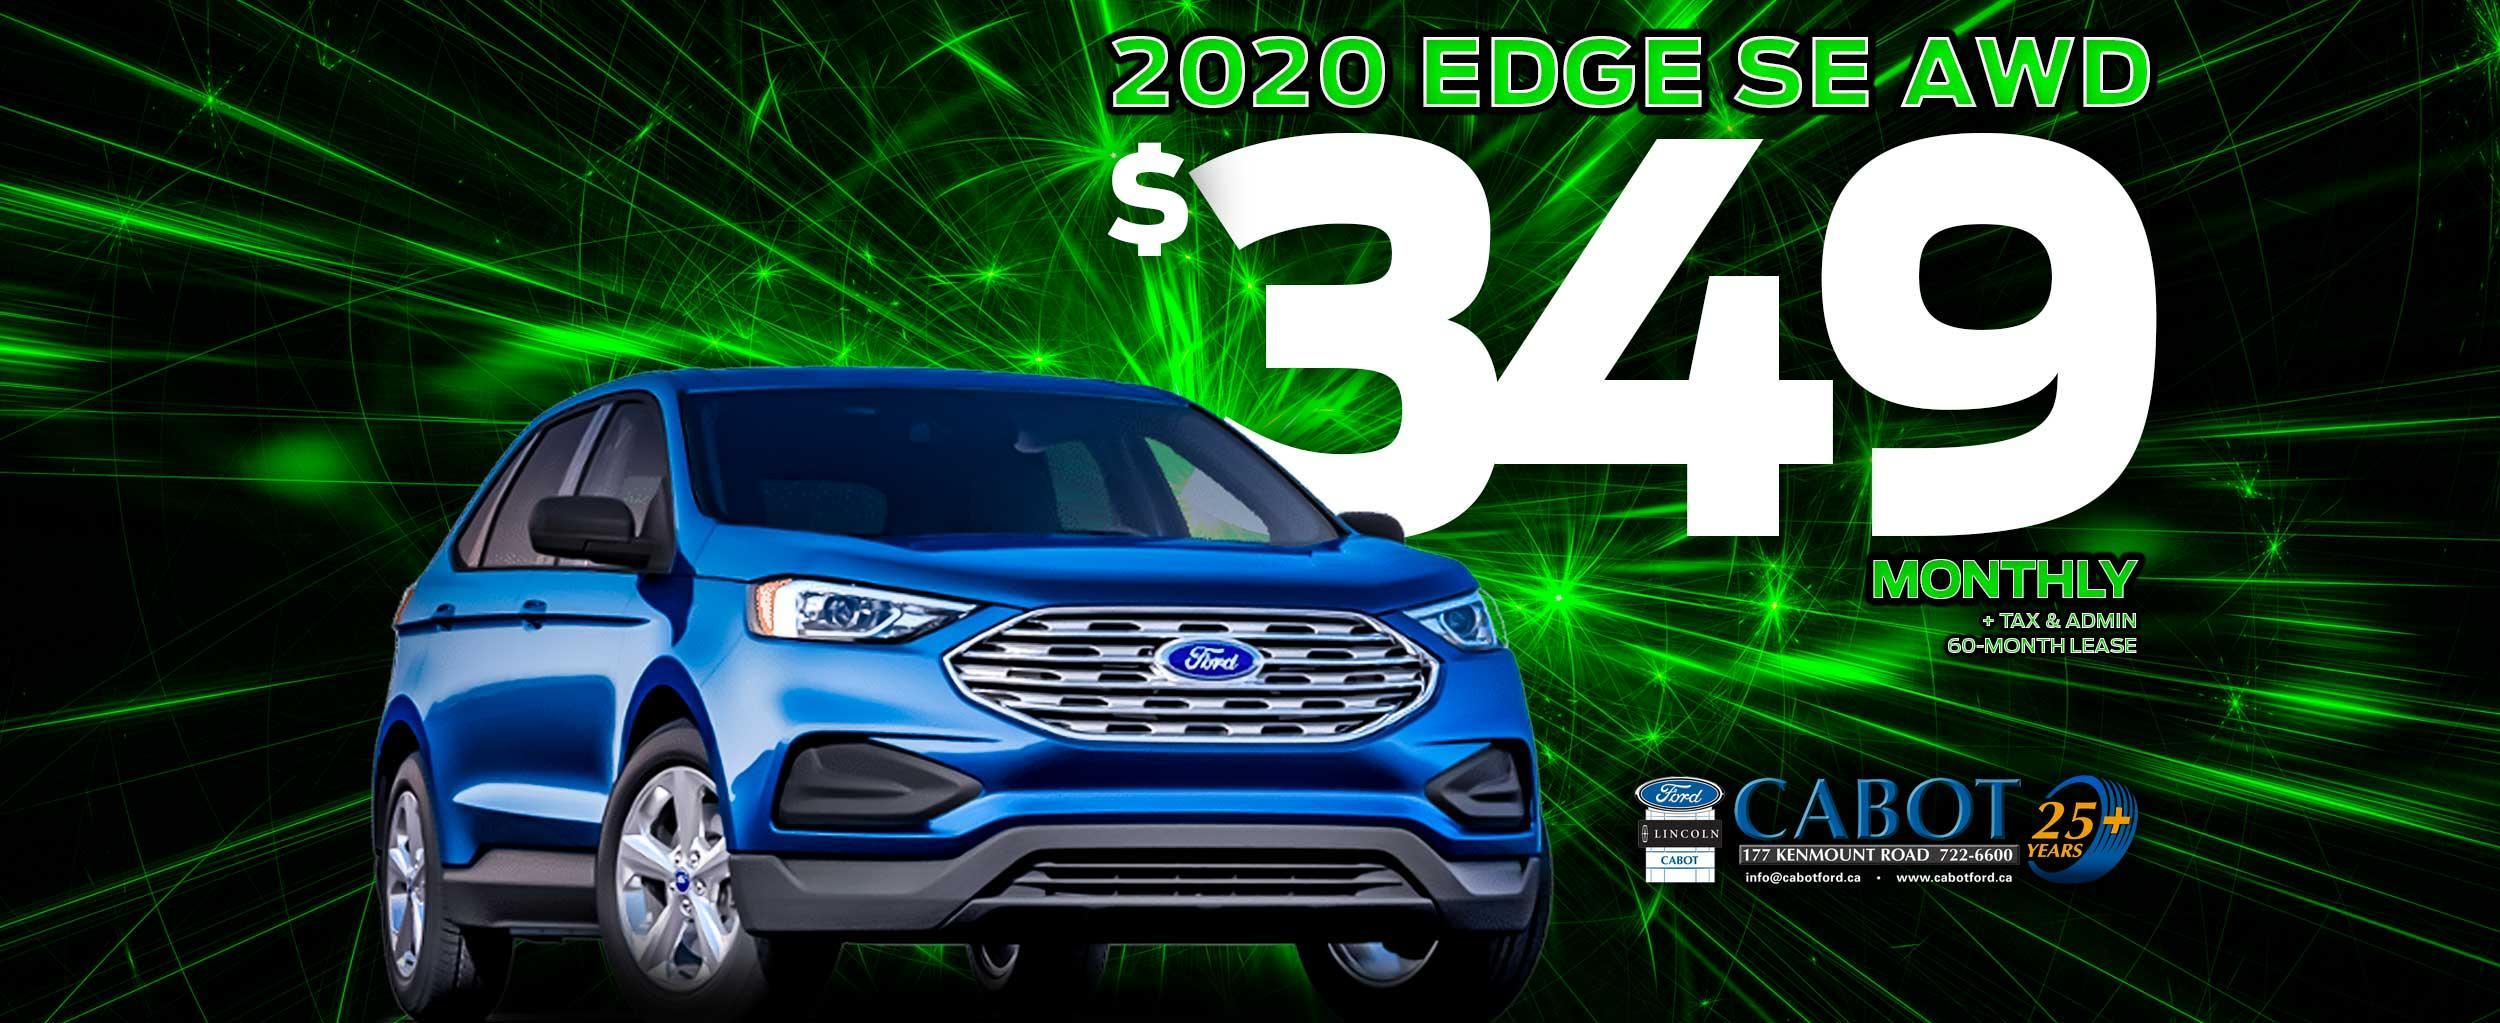 2020 Ford Edge SE AWD for $349 monthly!